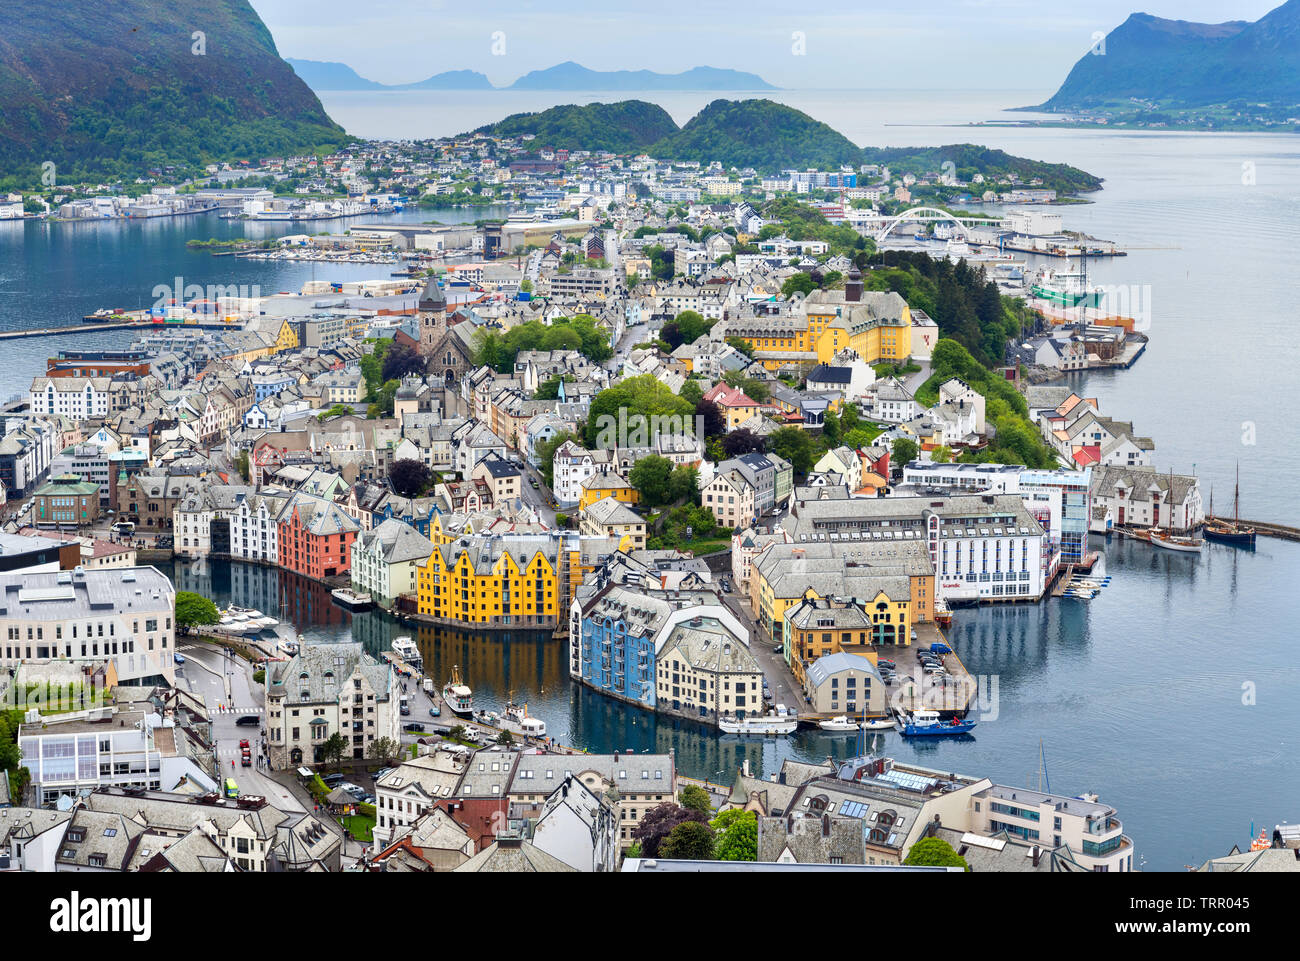 Aerial view over the town and port from the Kniven Viewpoint, Aksla Hill, Ålesund, Møre og Romsdal, Sunnmøre, Norway Stock Photo